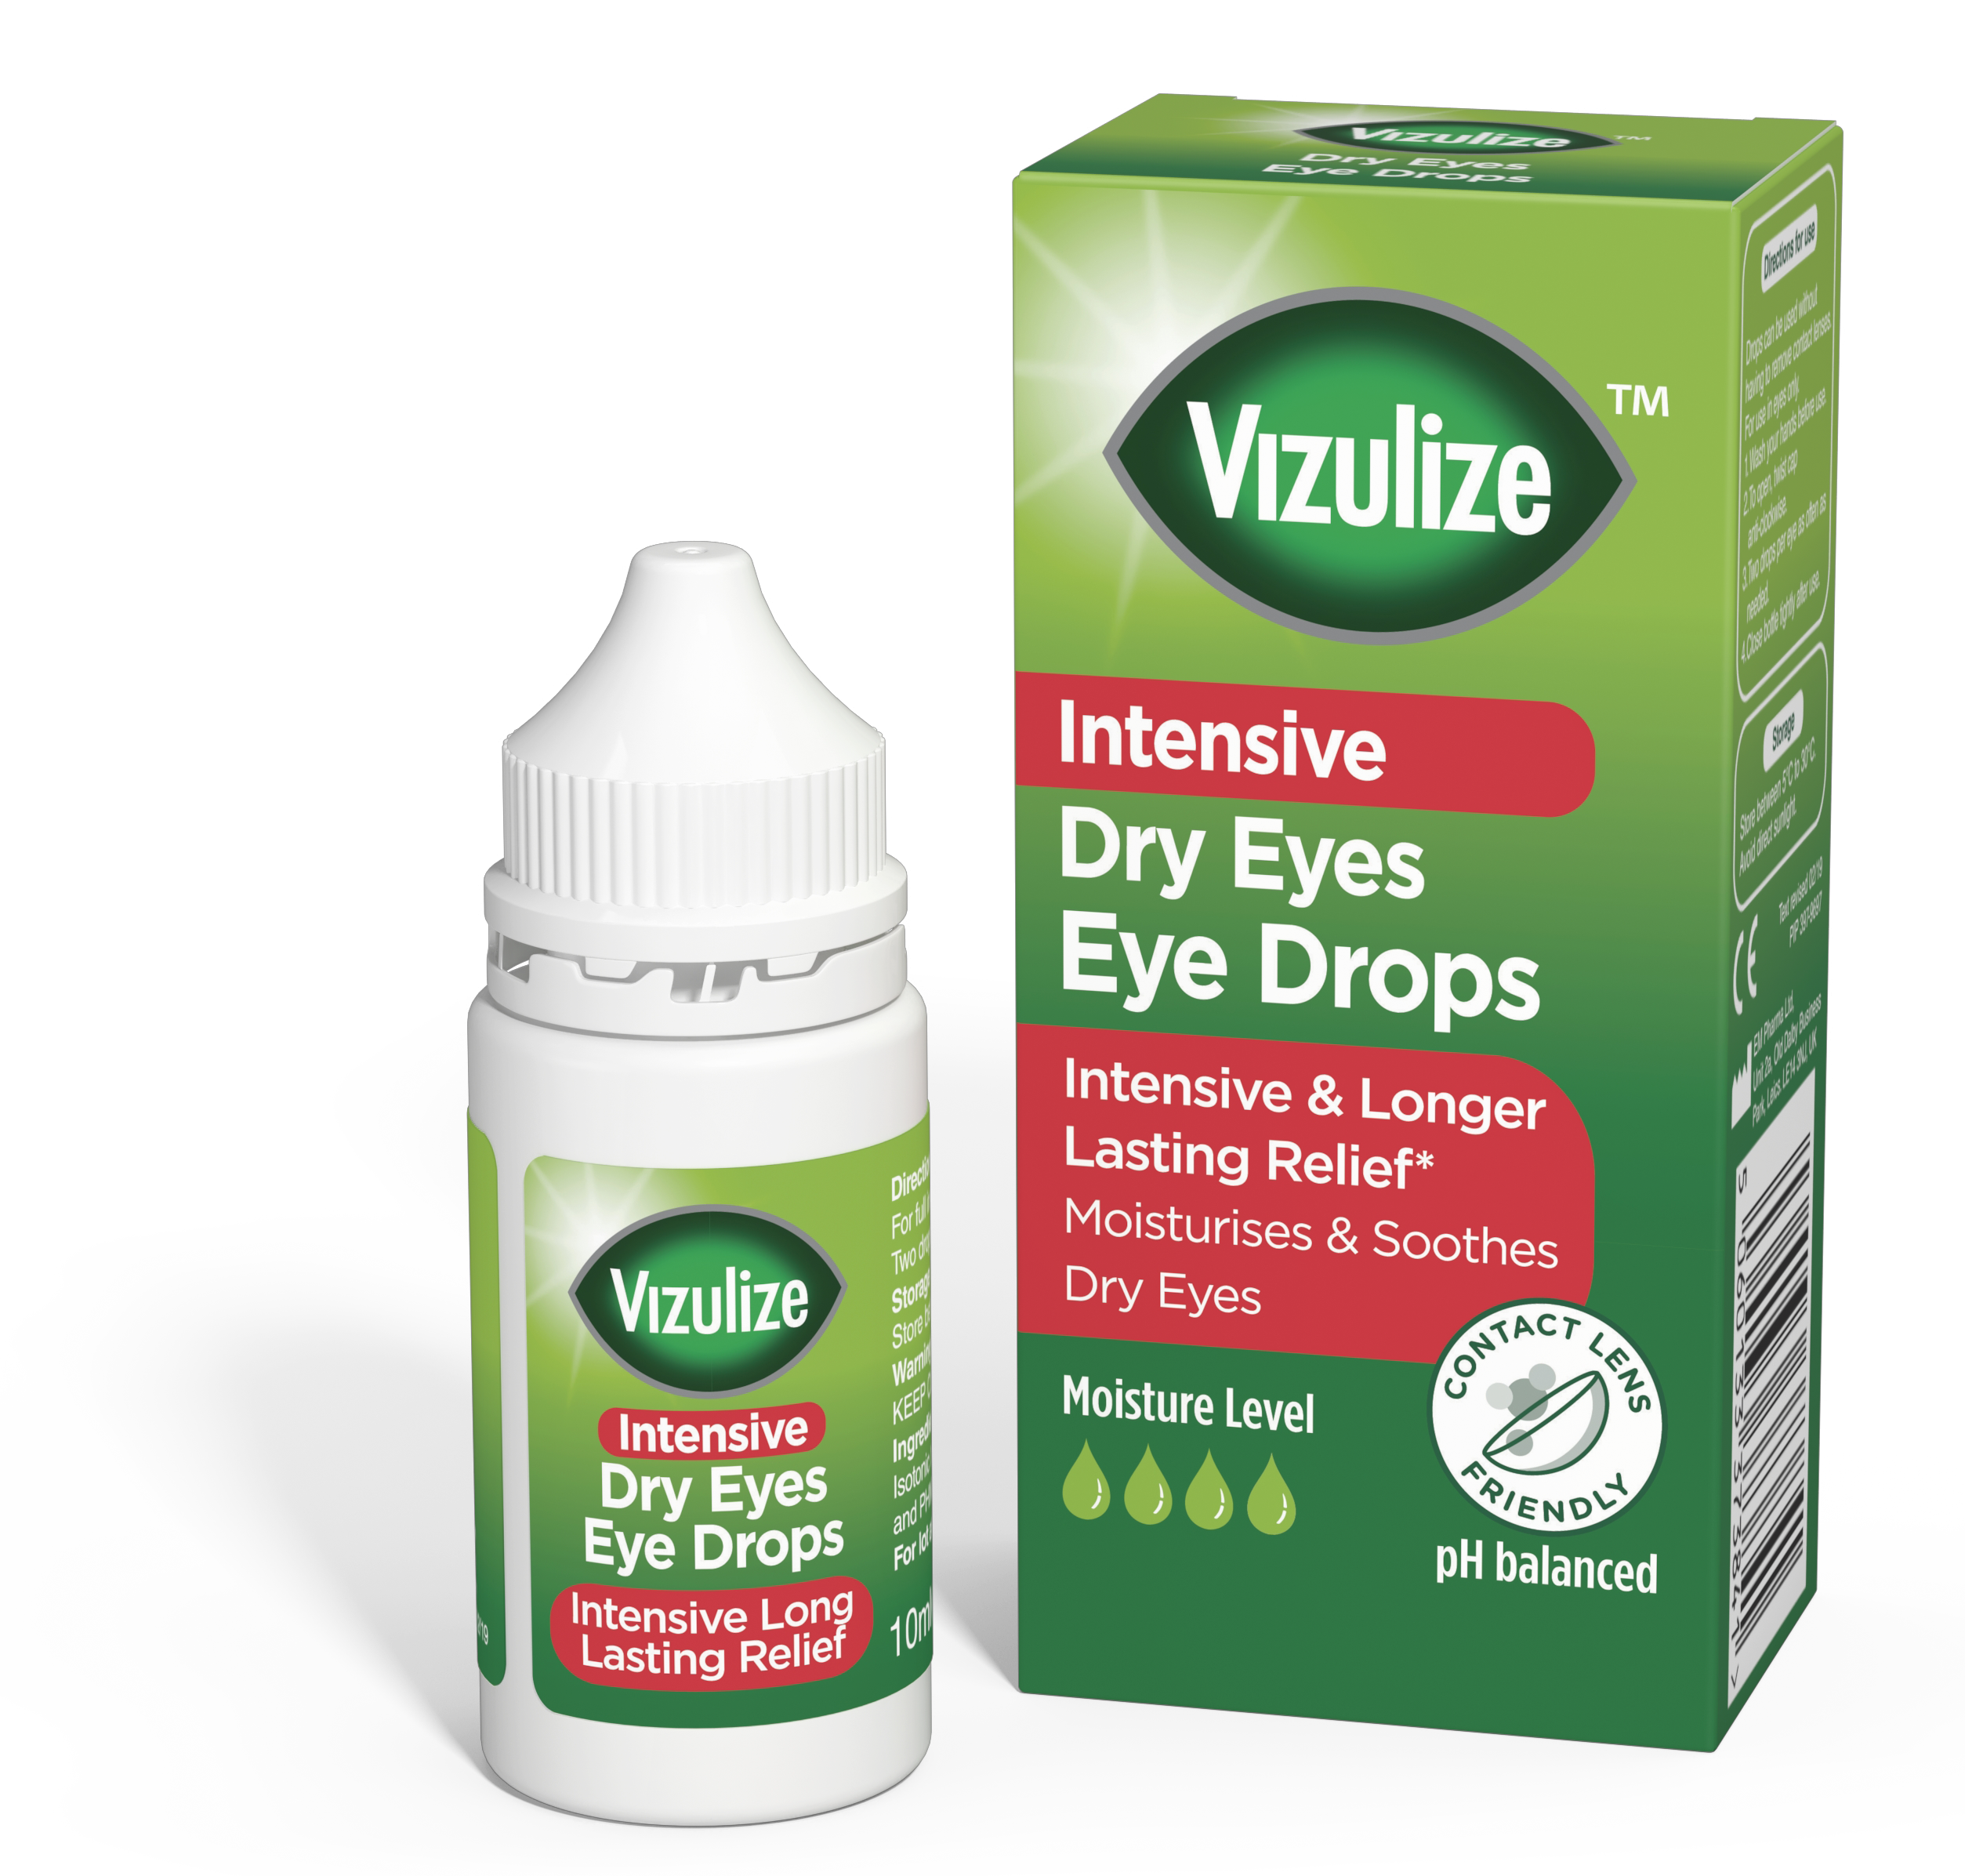 Vizulize Intensive Dry Eyes Eye Drops